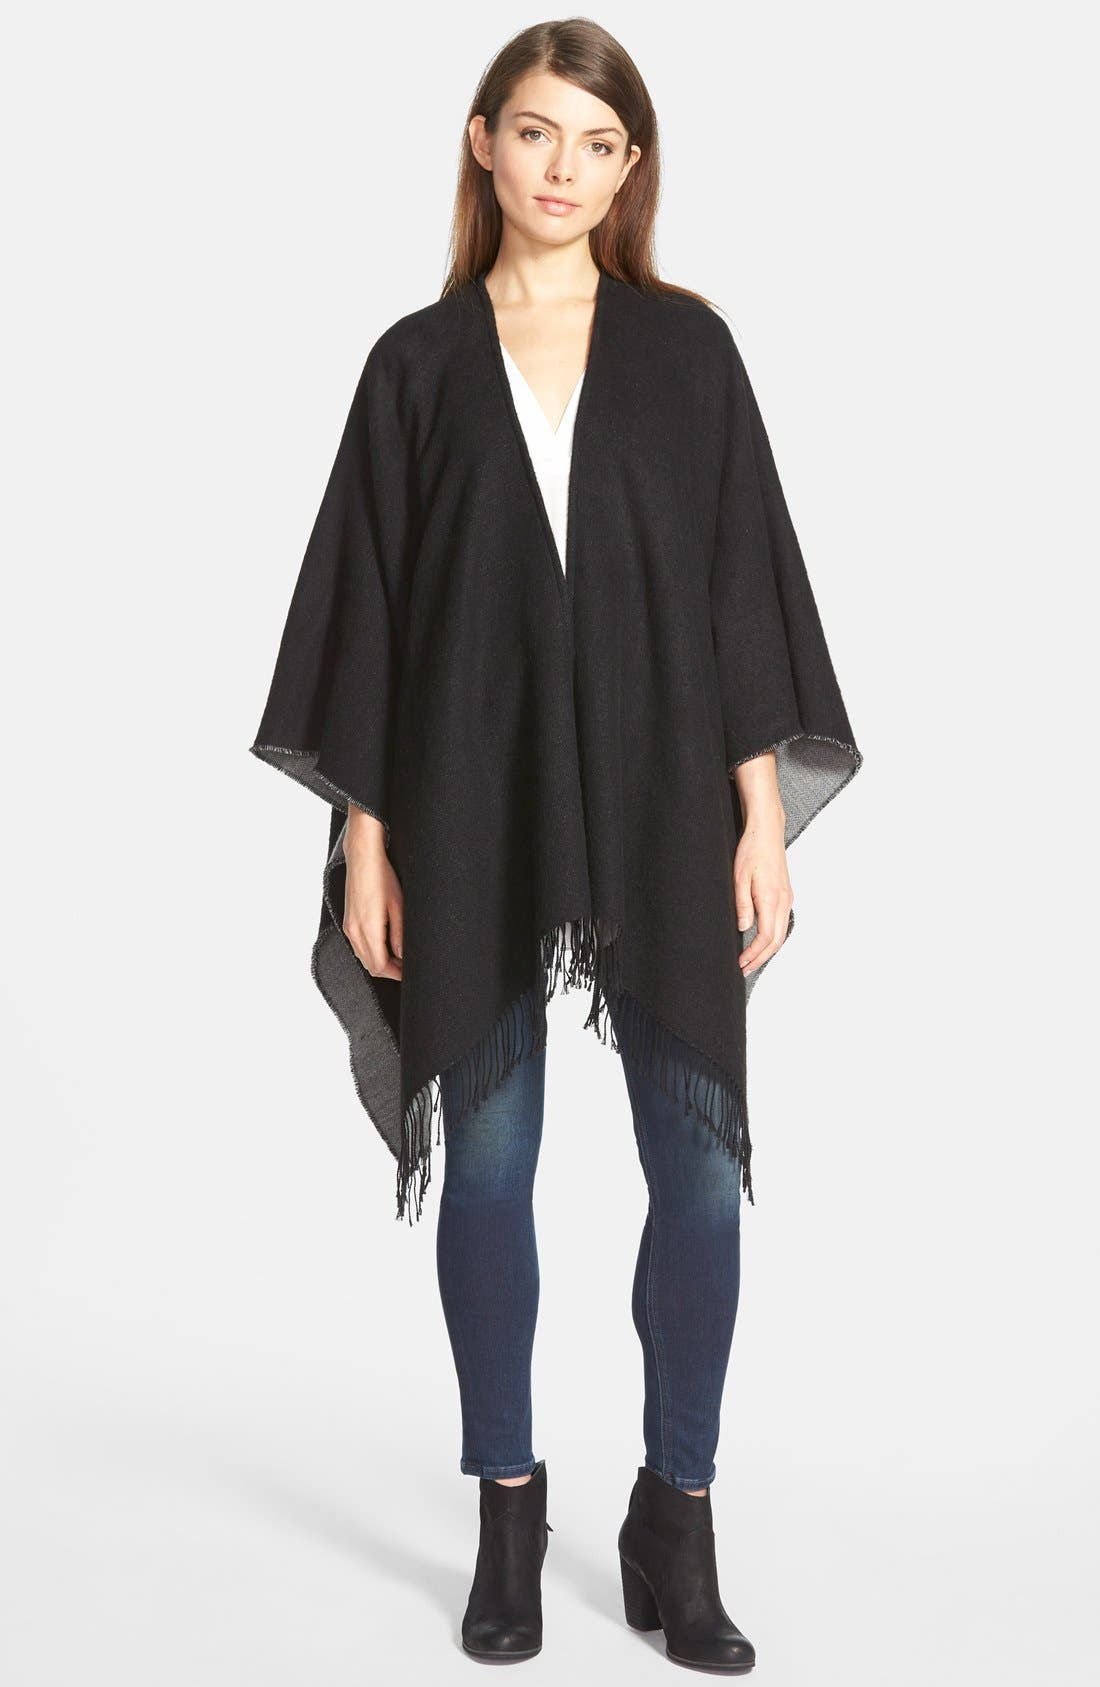 Main Image - Nordstrom Reversible Cape with Fringe